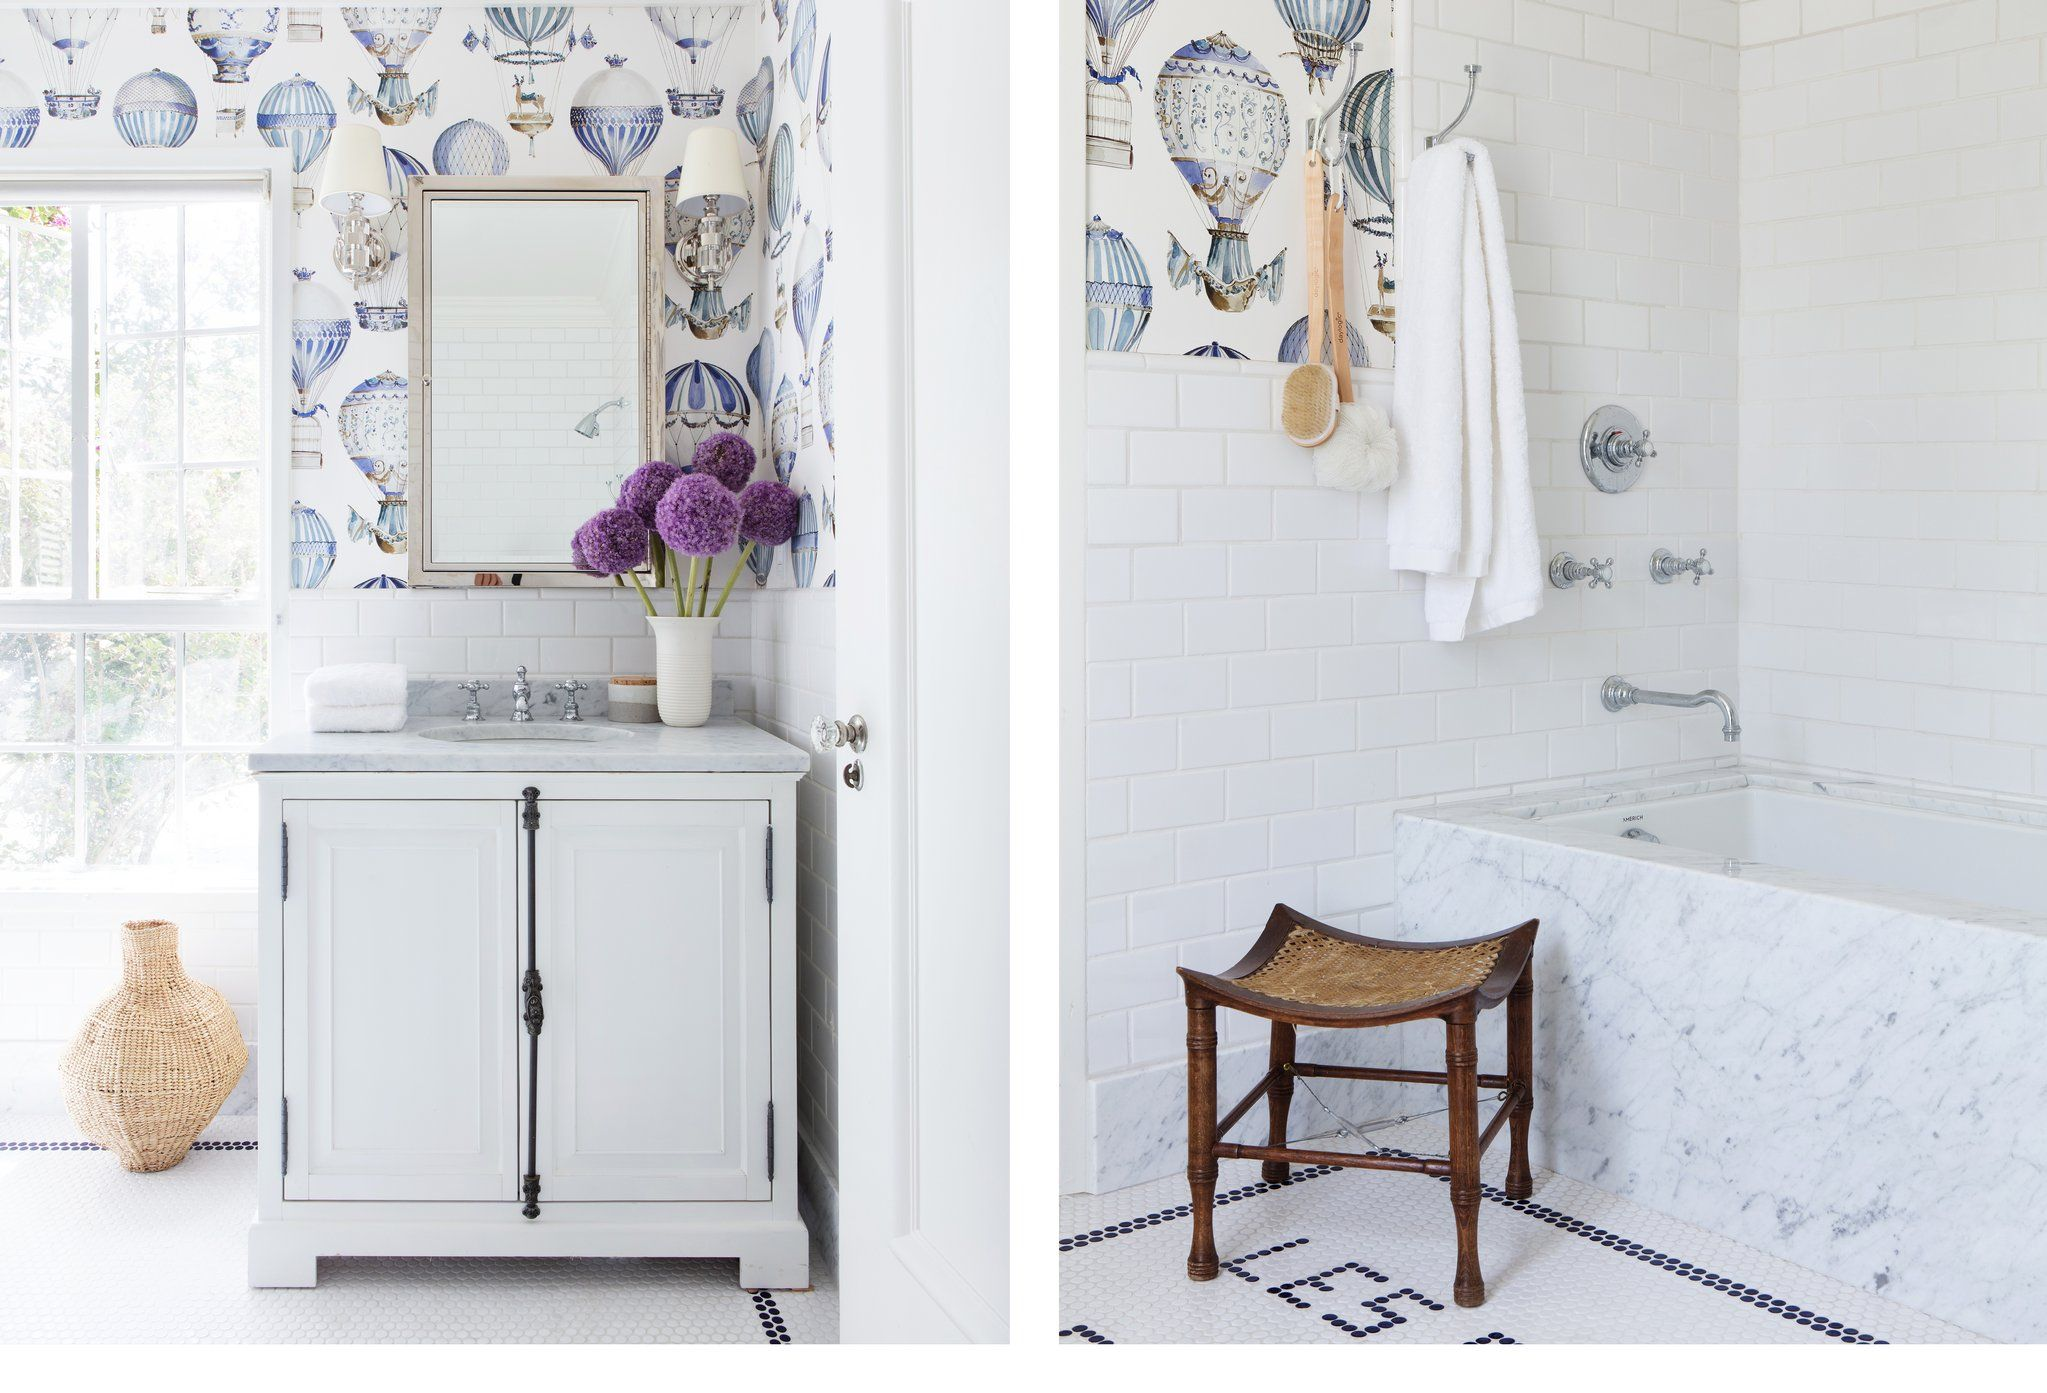 Ideas for bathroom wallpapers that you   can try out in your home